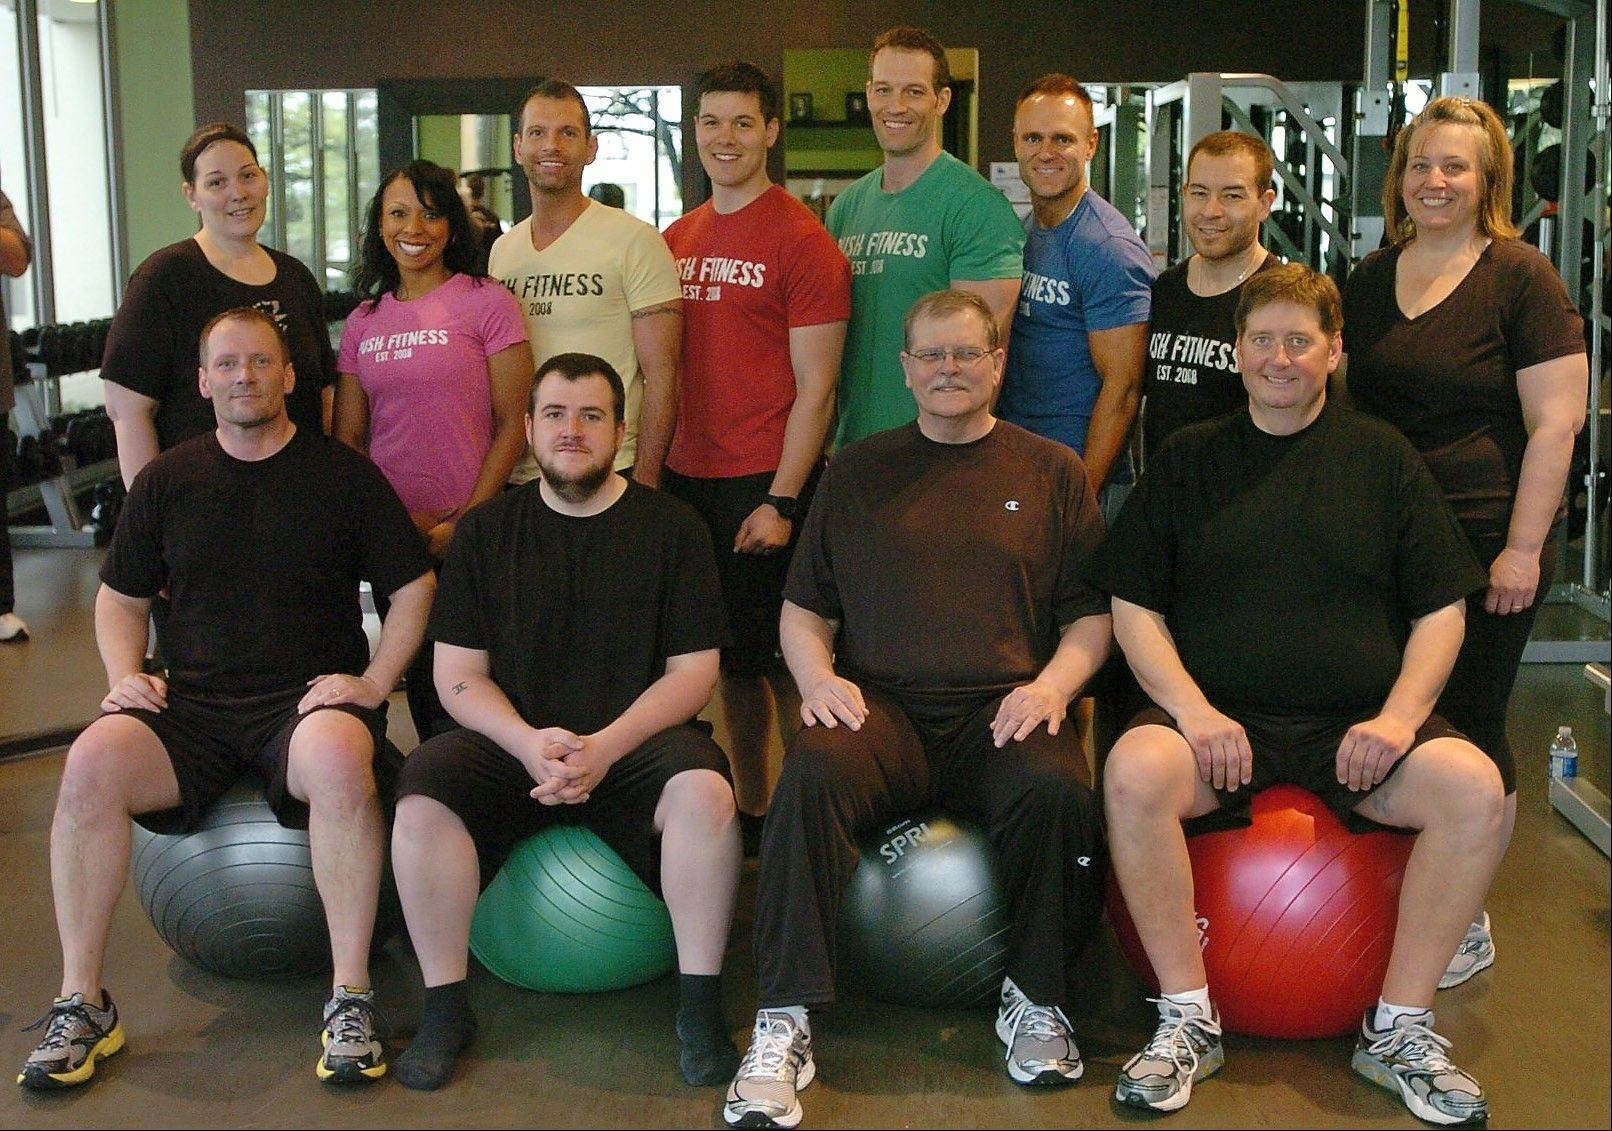 Over the course of 12 weeks, the 2012 Fittest Loser competitors lost a combined 399 pounds with the help of their Push Fitness trainers.